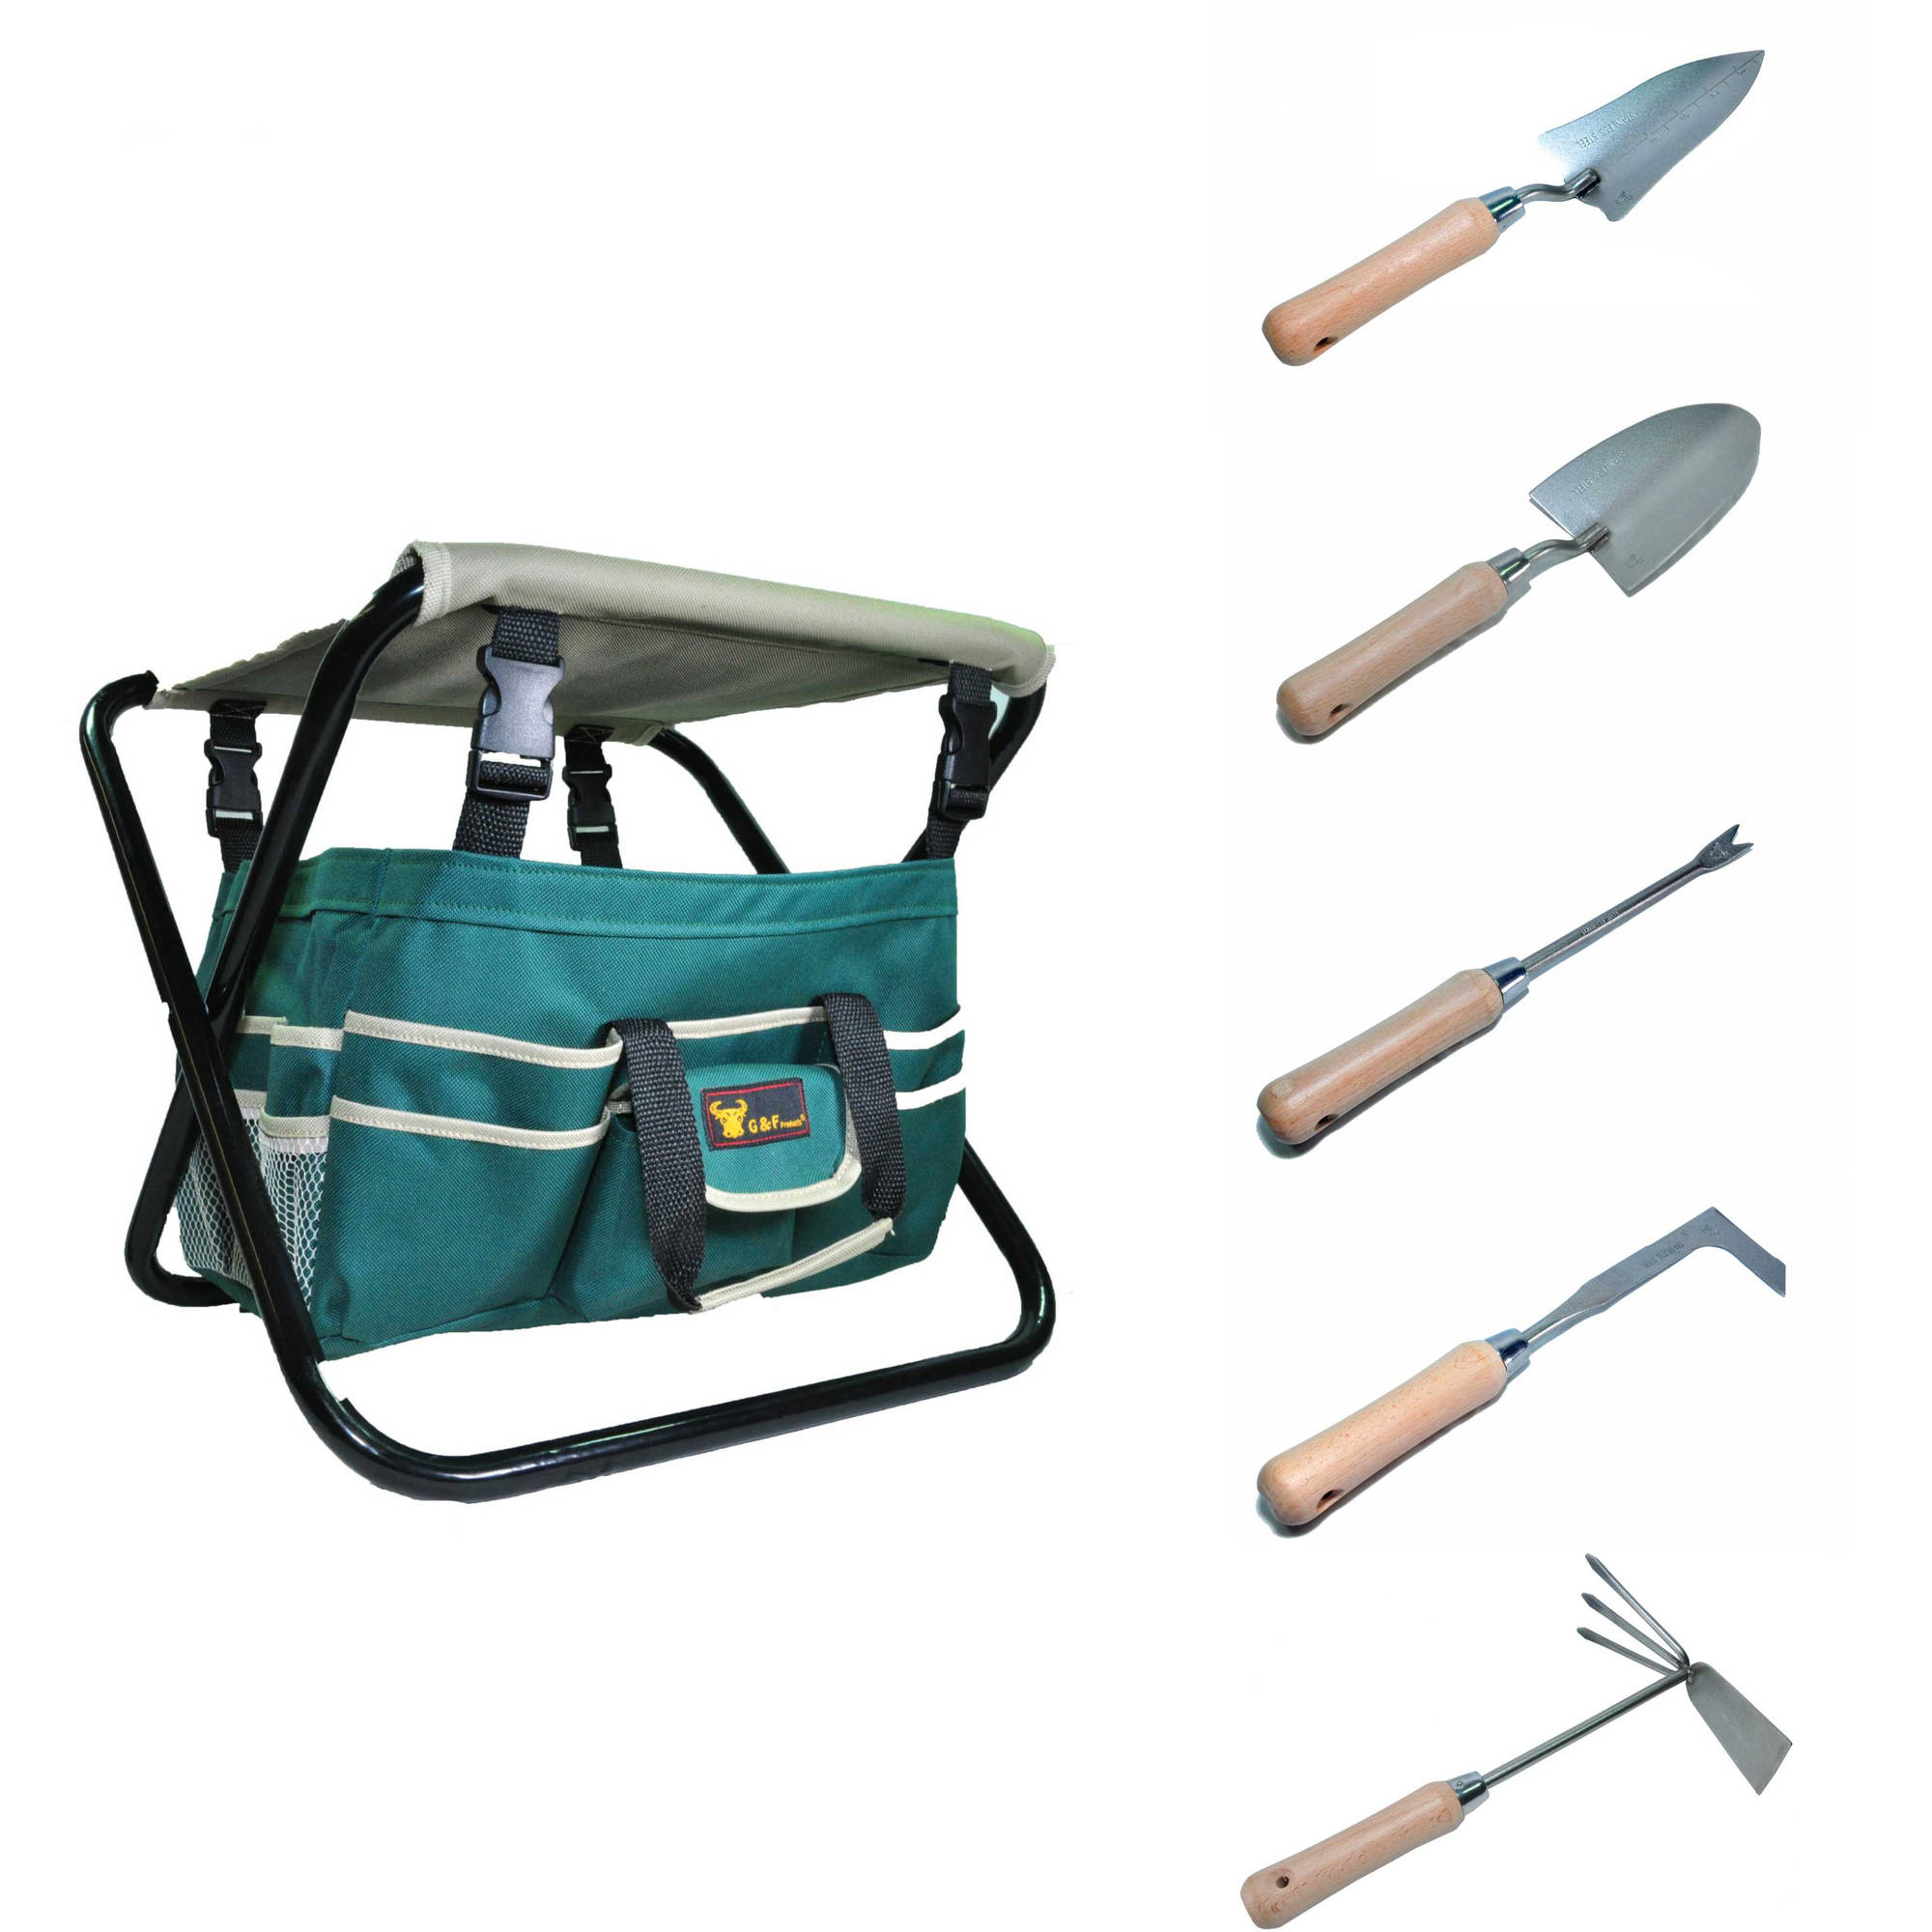 7 piece ergonomic garden tool set includes premium grade for Gardening tools 4 letters